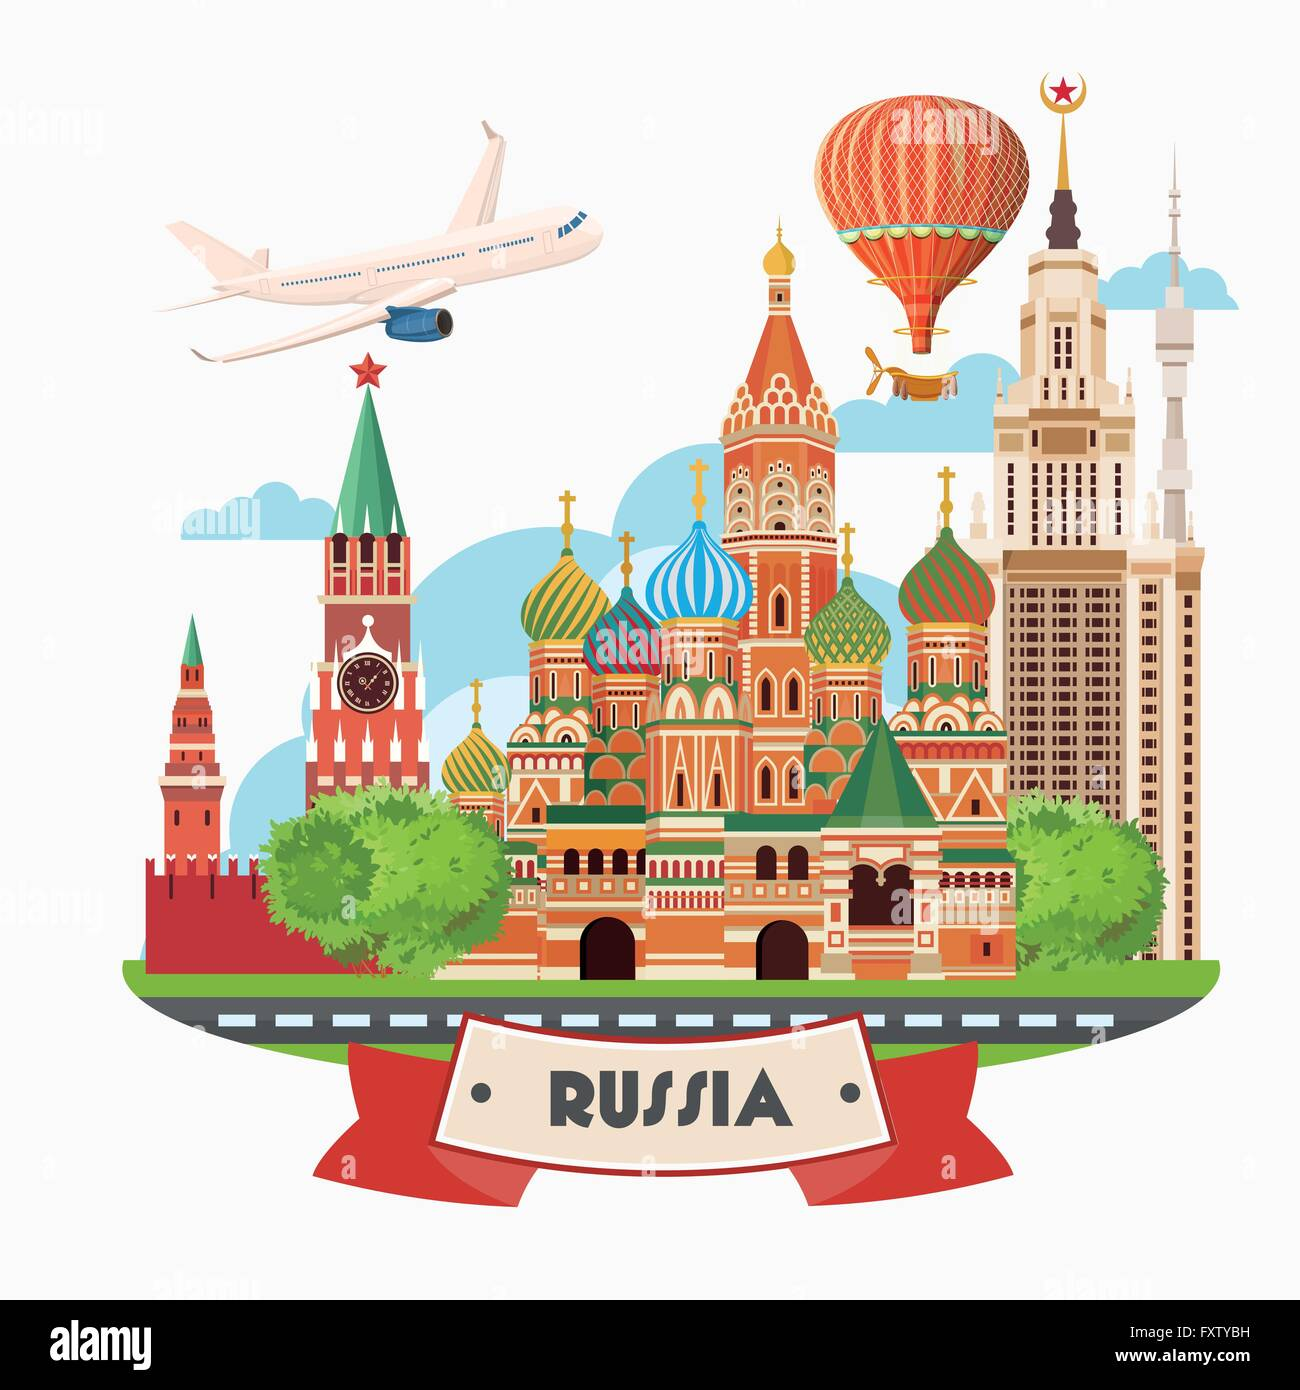 Russia Vector Poster Russian Background With City